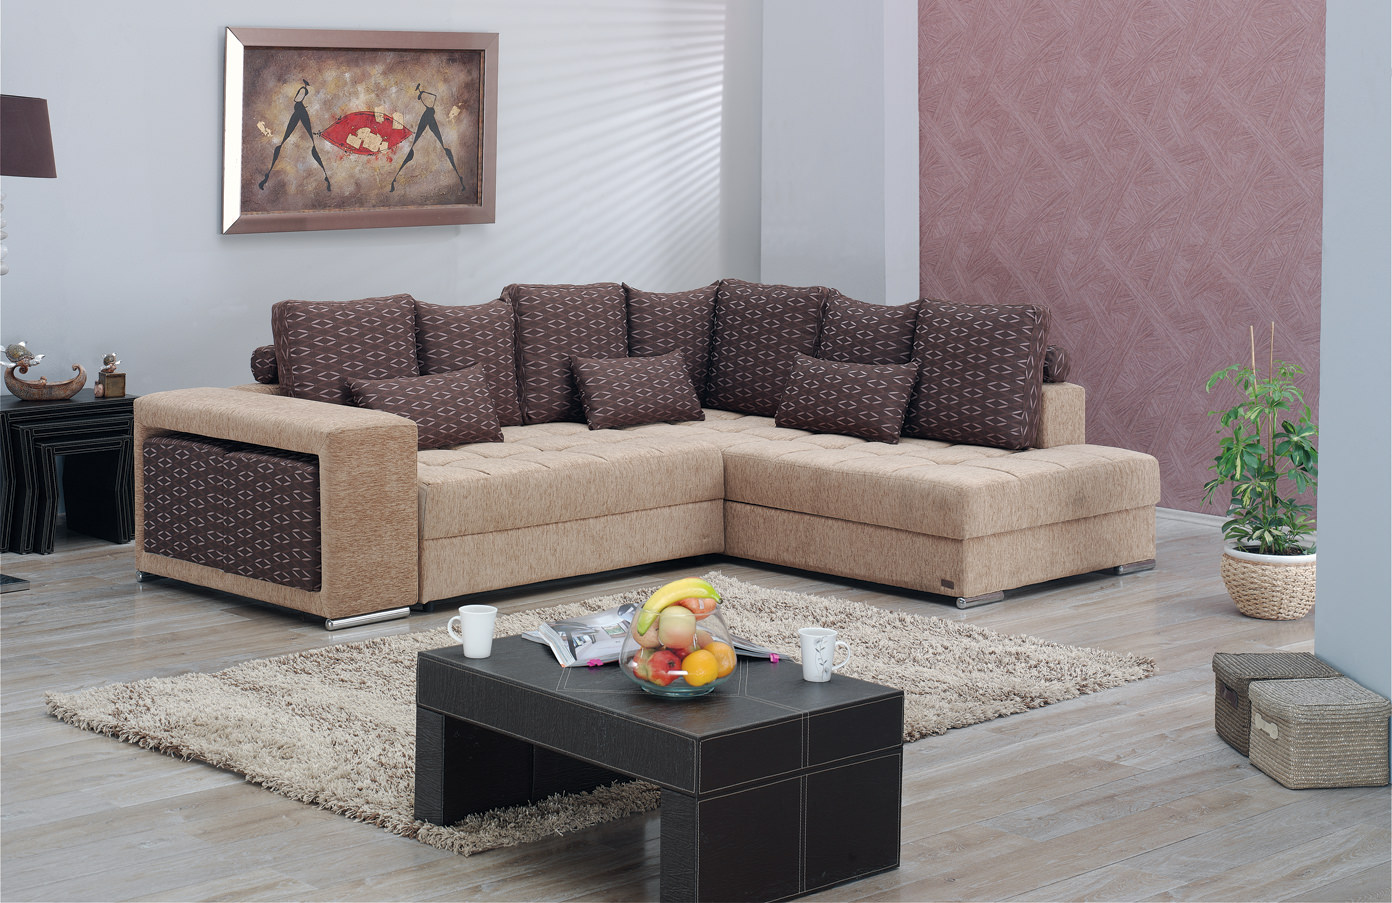 los angeles sectional sofa set by empire furniture usa With sectional sofa in los angeles